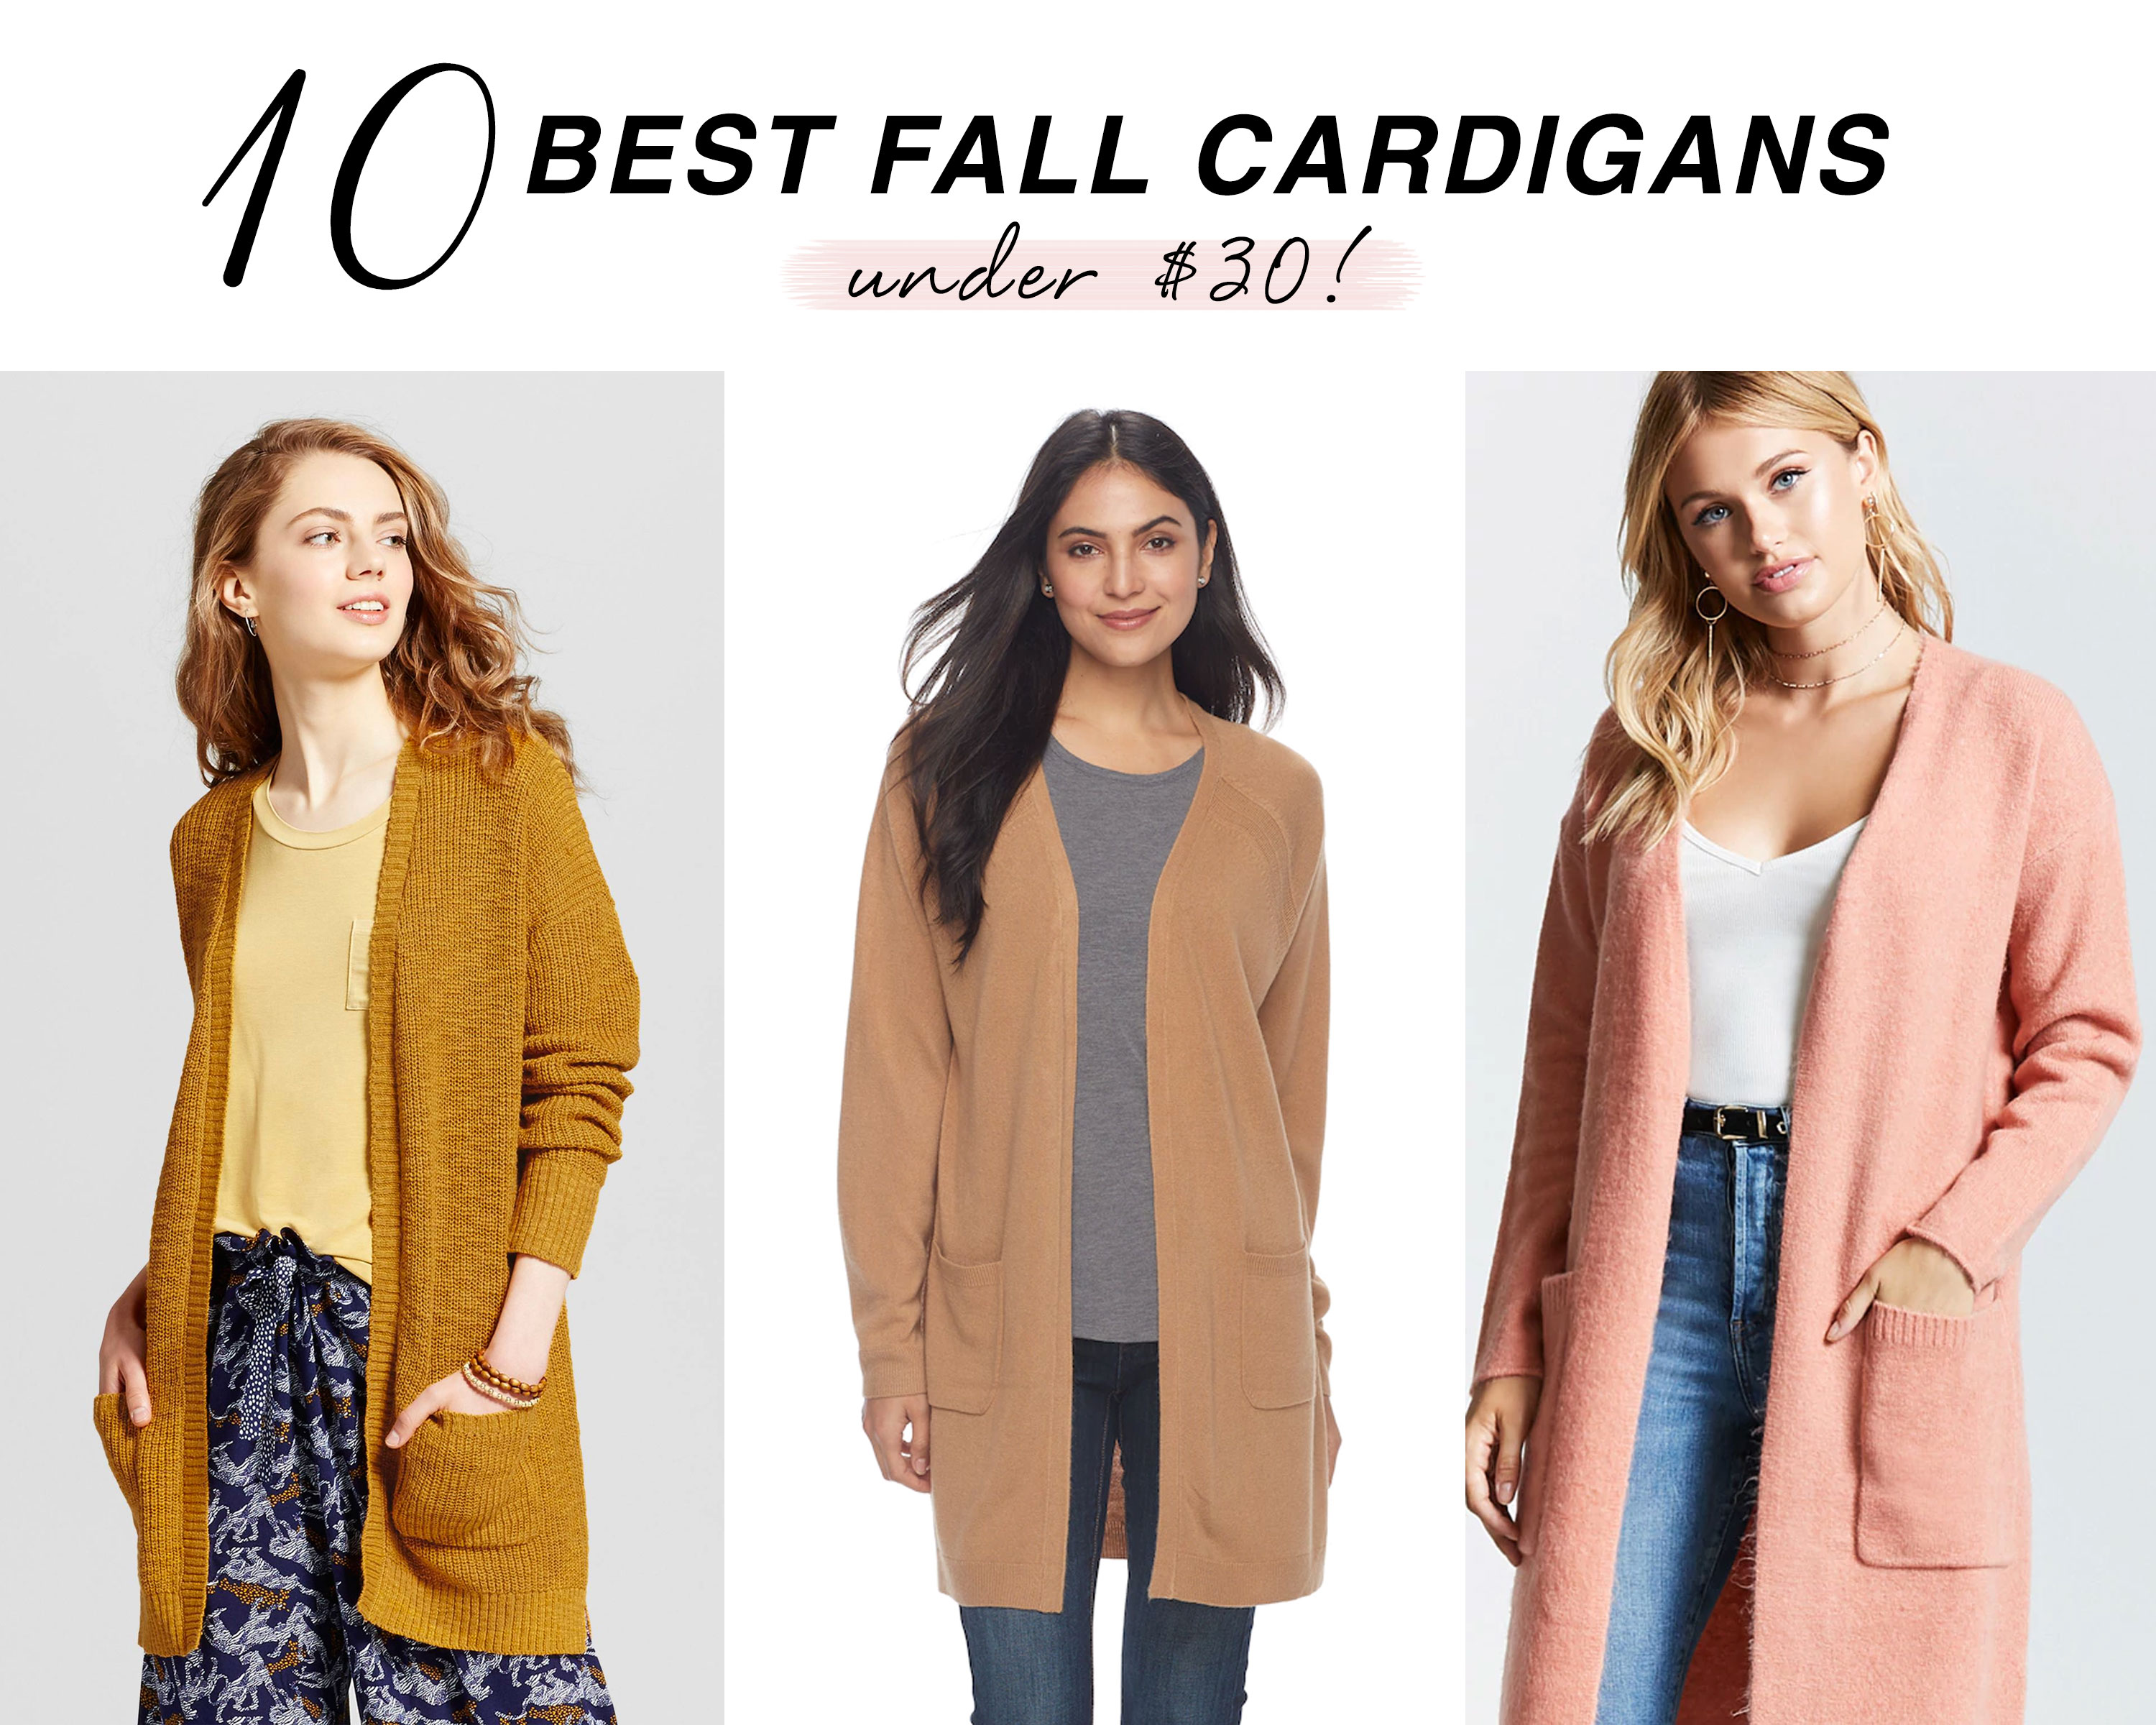 Shop the best fall cardigans on a budget